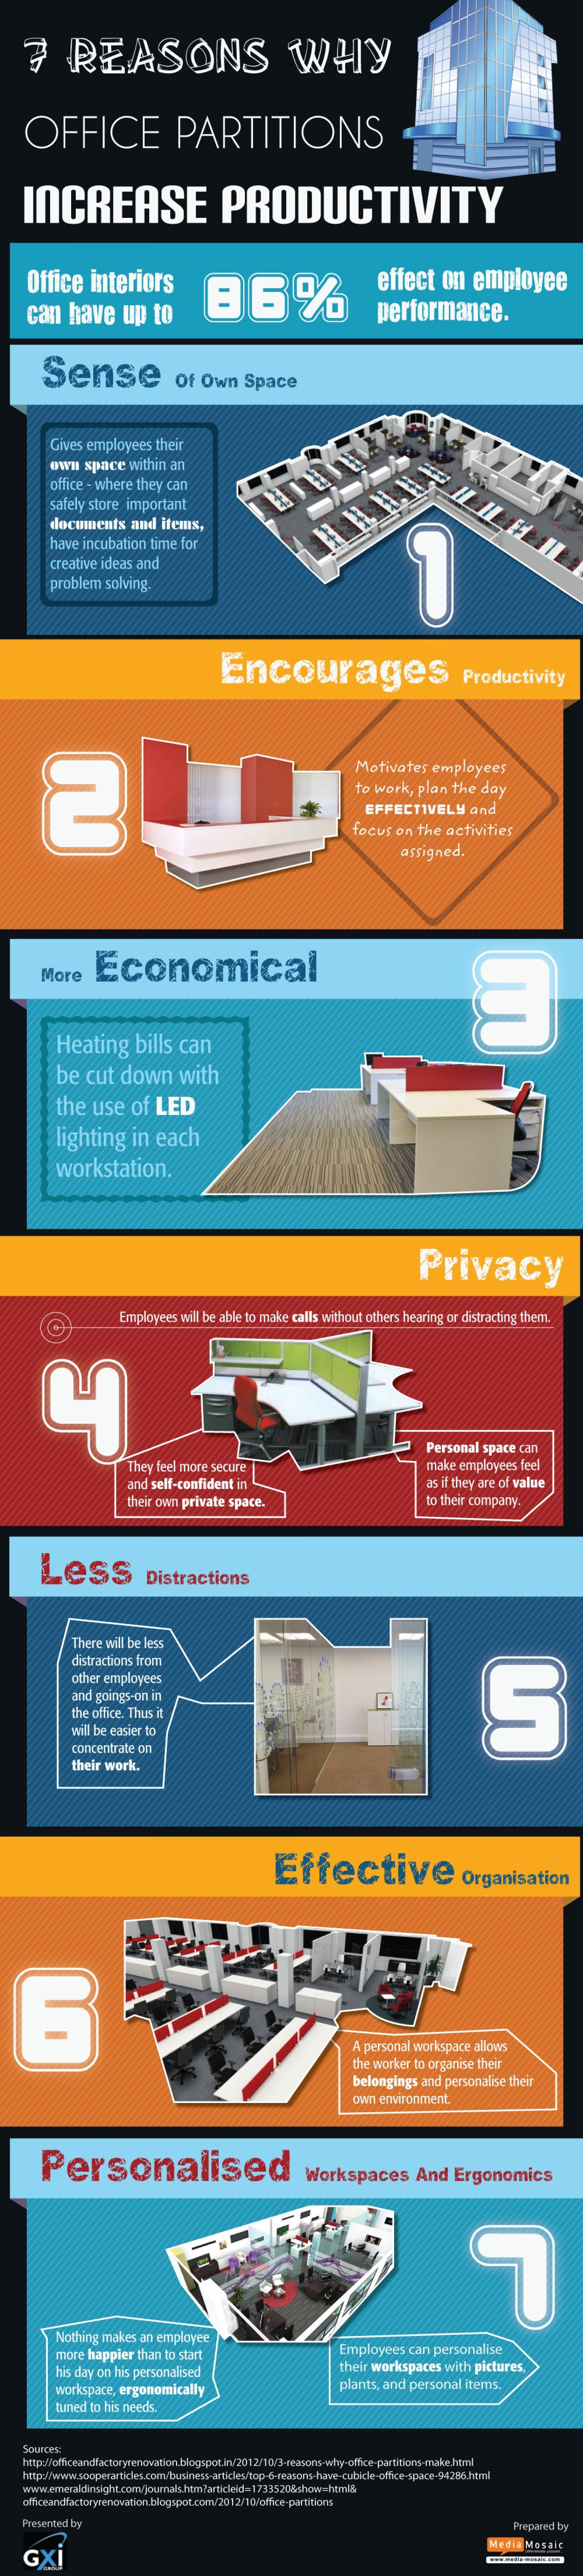 Why office Partitions increase Productivity ? Infographic